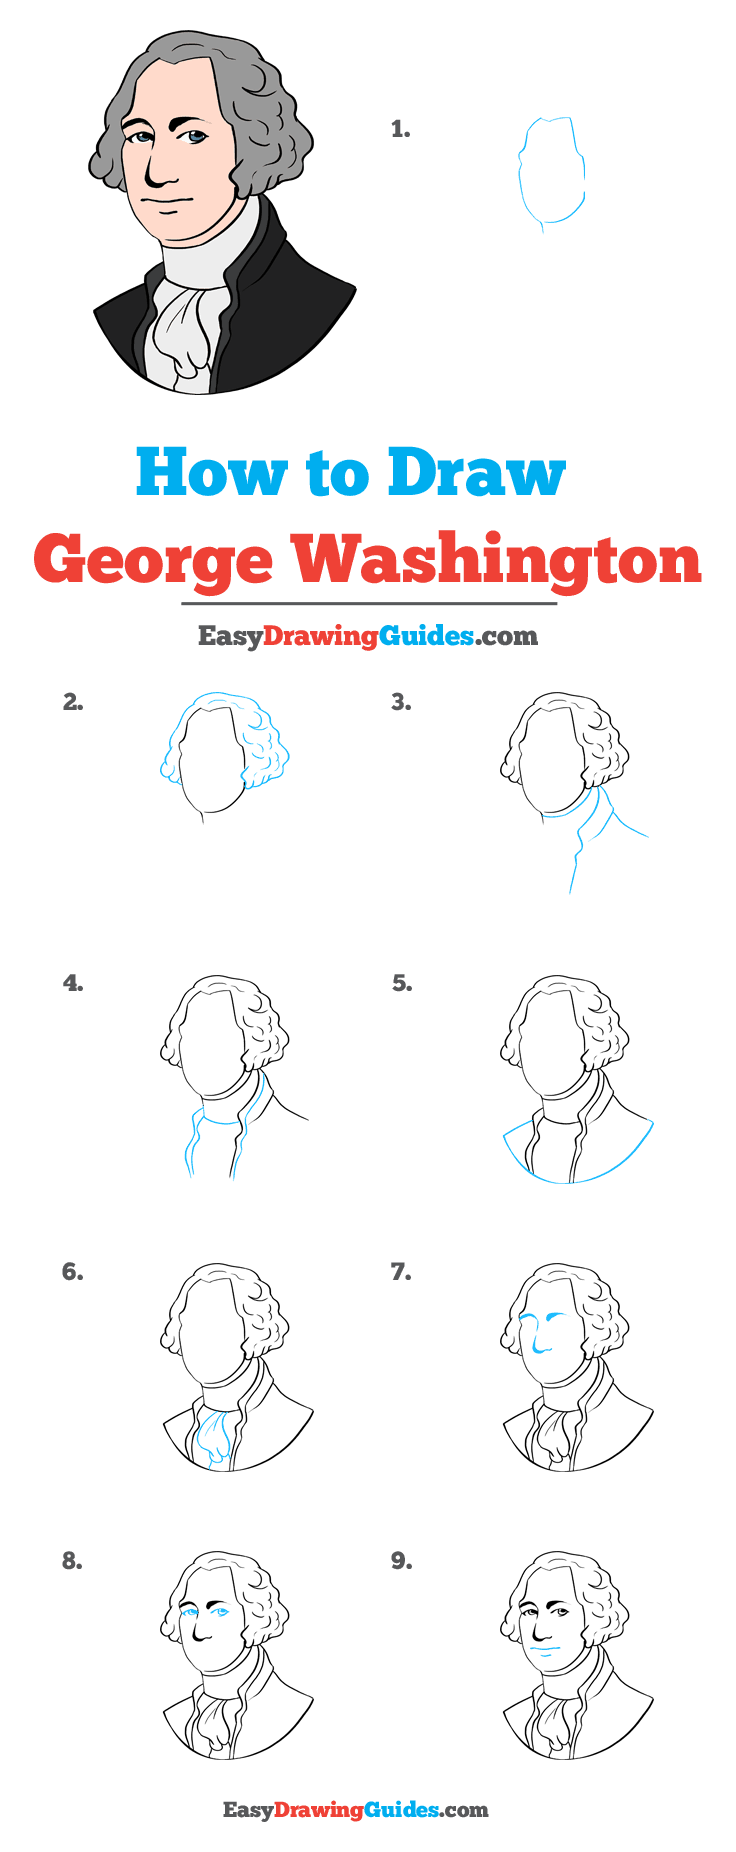 George Washington Drawing Easy : george, washington, drawing, George, Washington, Really, Drawing, Tutorial, Drawings,, Easy,, Cartoon